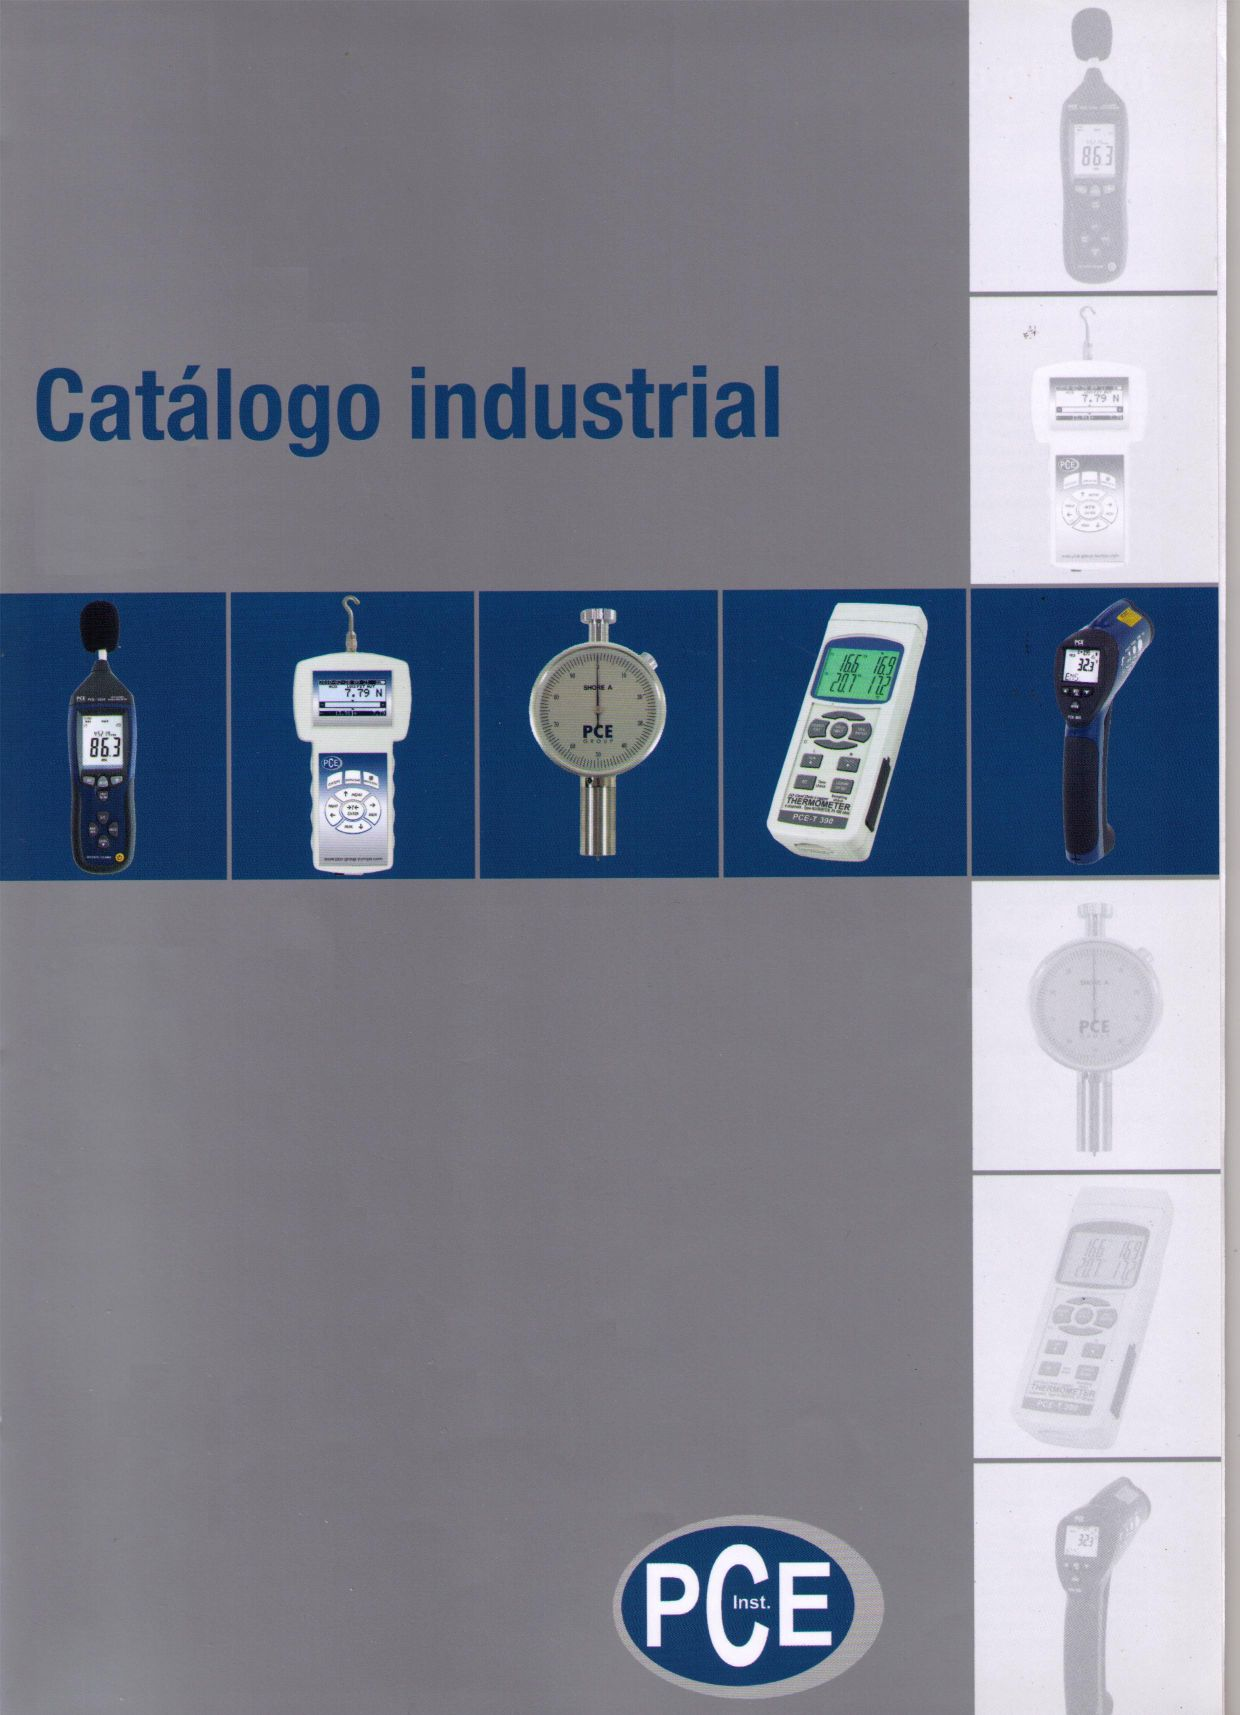 Solicite nuestro cat�logo industrial actual.